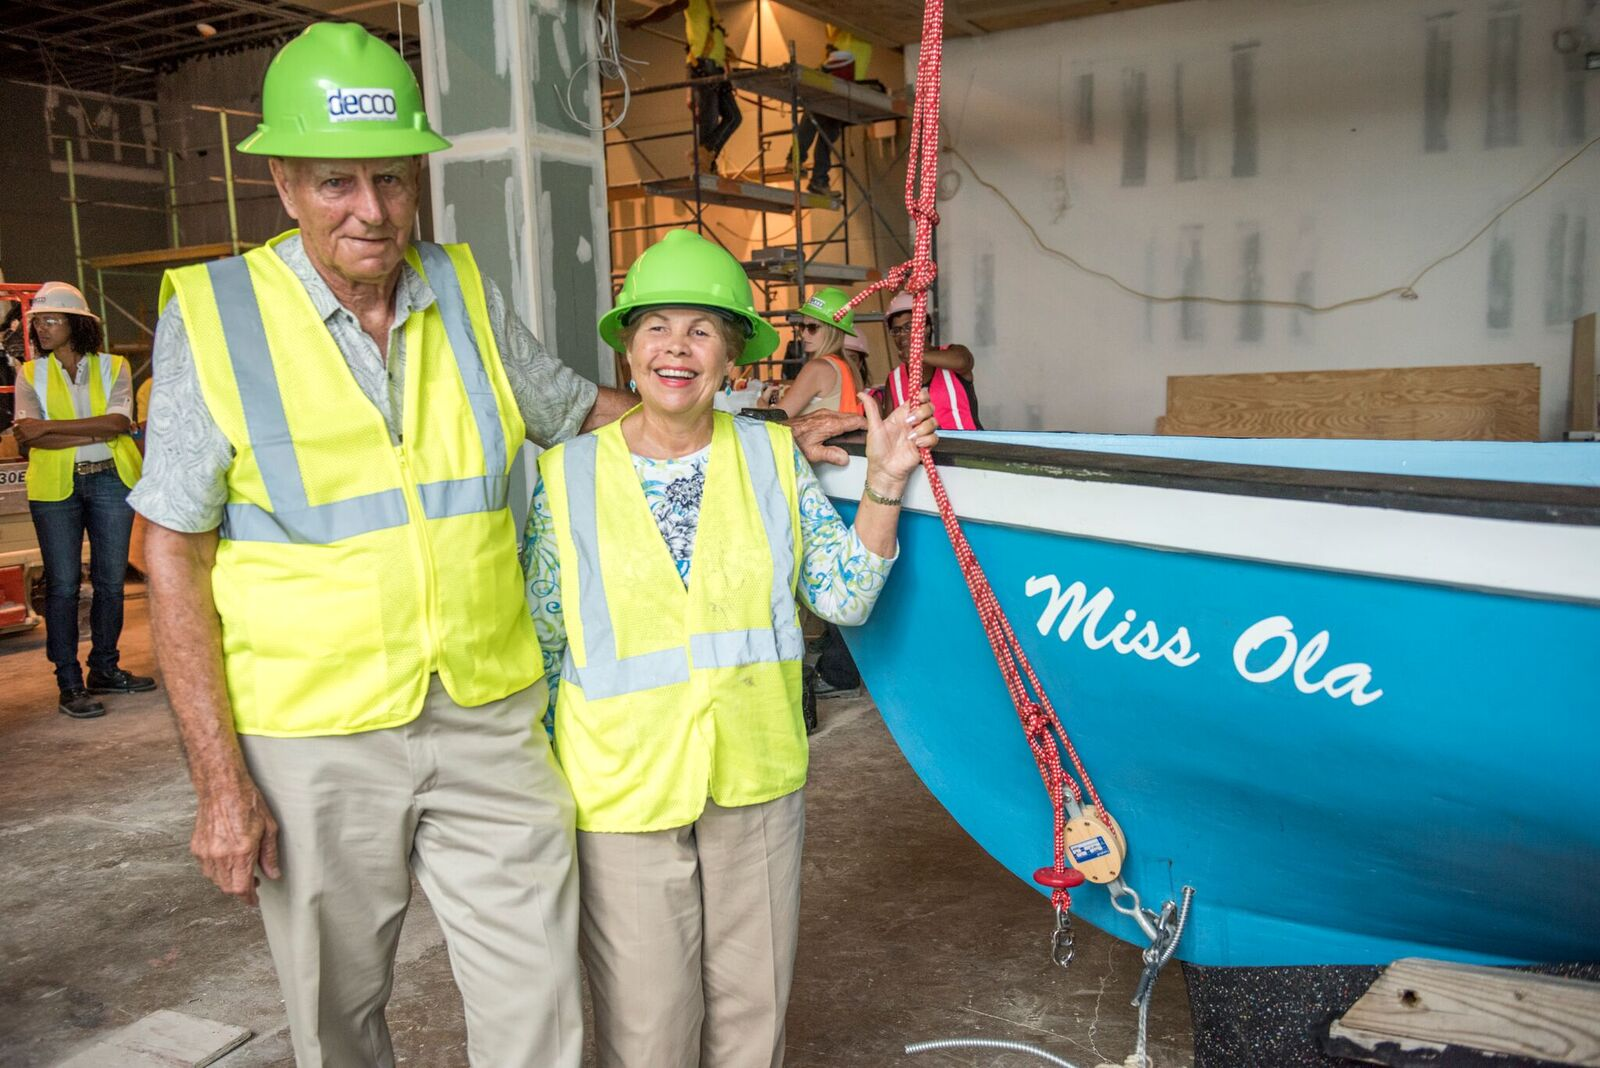 Catboat: Capt. Ken Jackson and Miss Ola